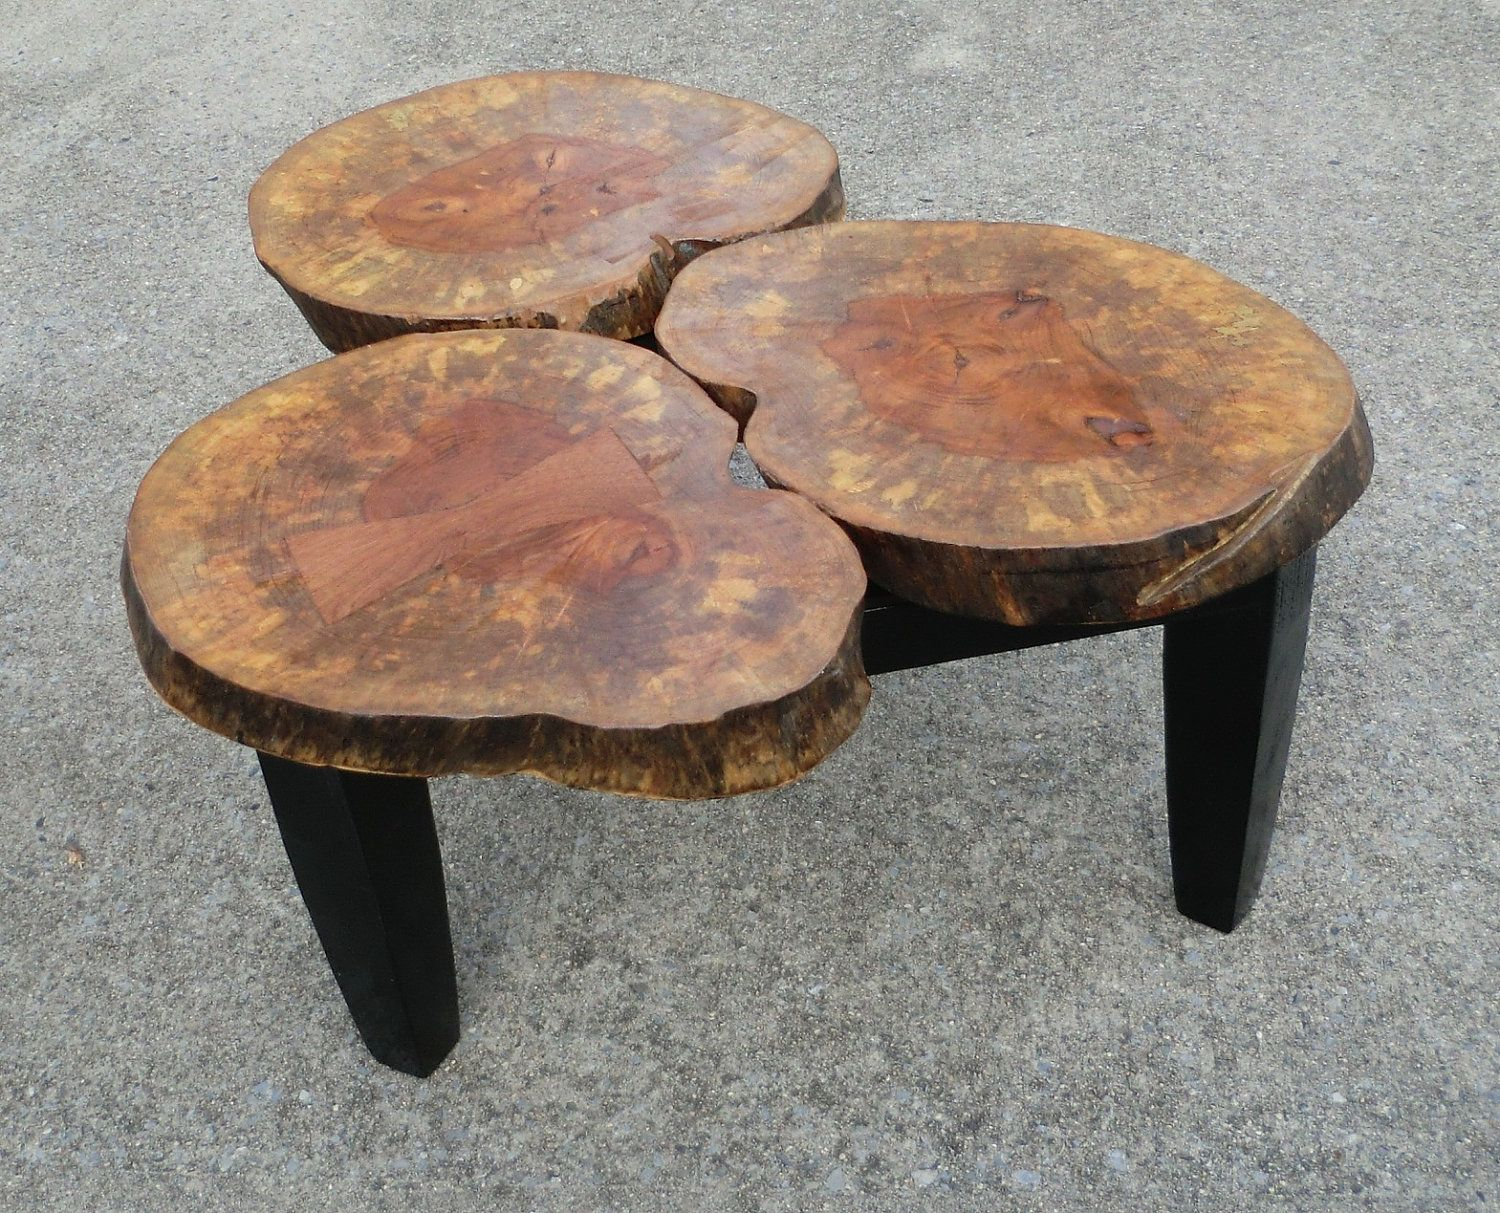 Gorgeous tree stump coffee tables collection dazzling three in gorgeous tree stump coffee tables collection dazzling three in one tree stump coffee table design geotapseo Image collections